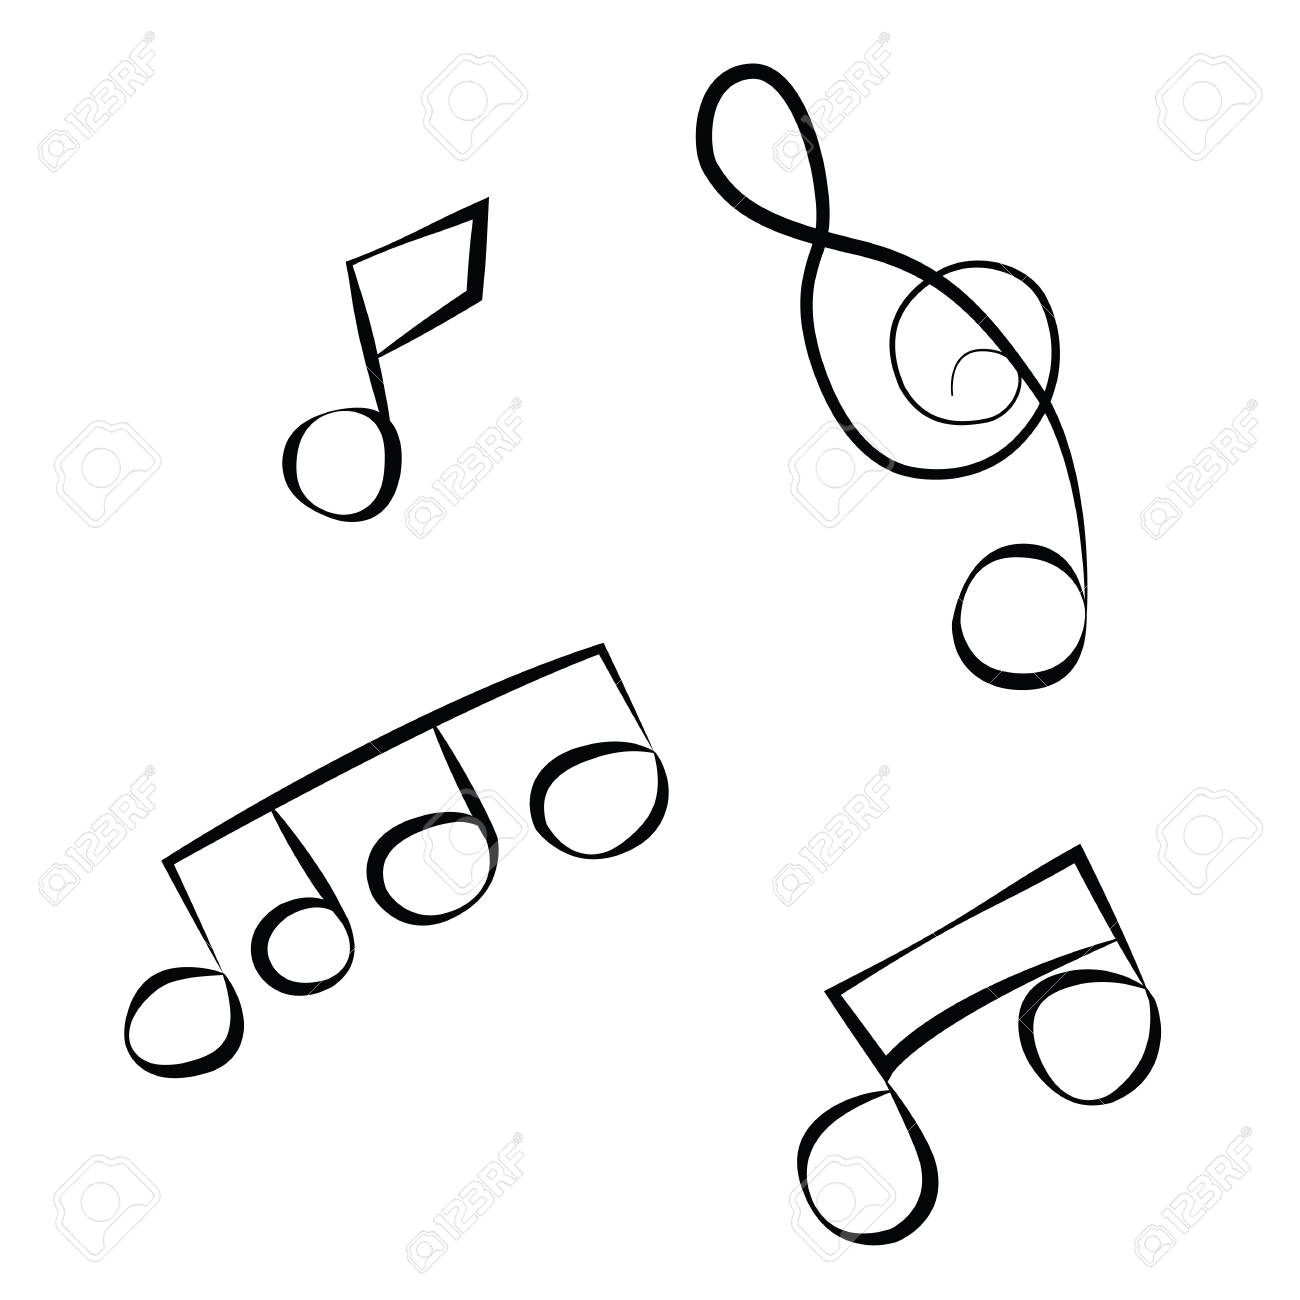 black outline vector music notes on white background royalty free rh 123rf com vector music notes free vector music notes png